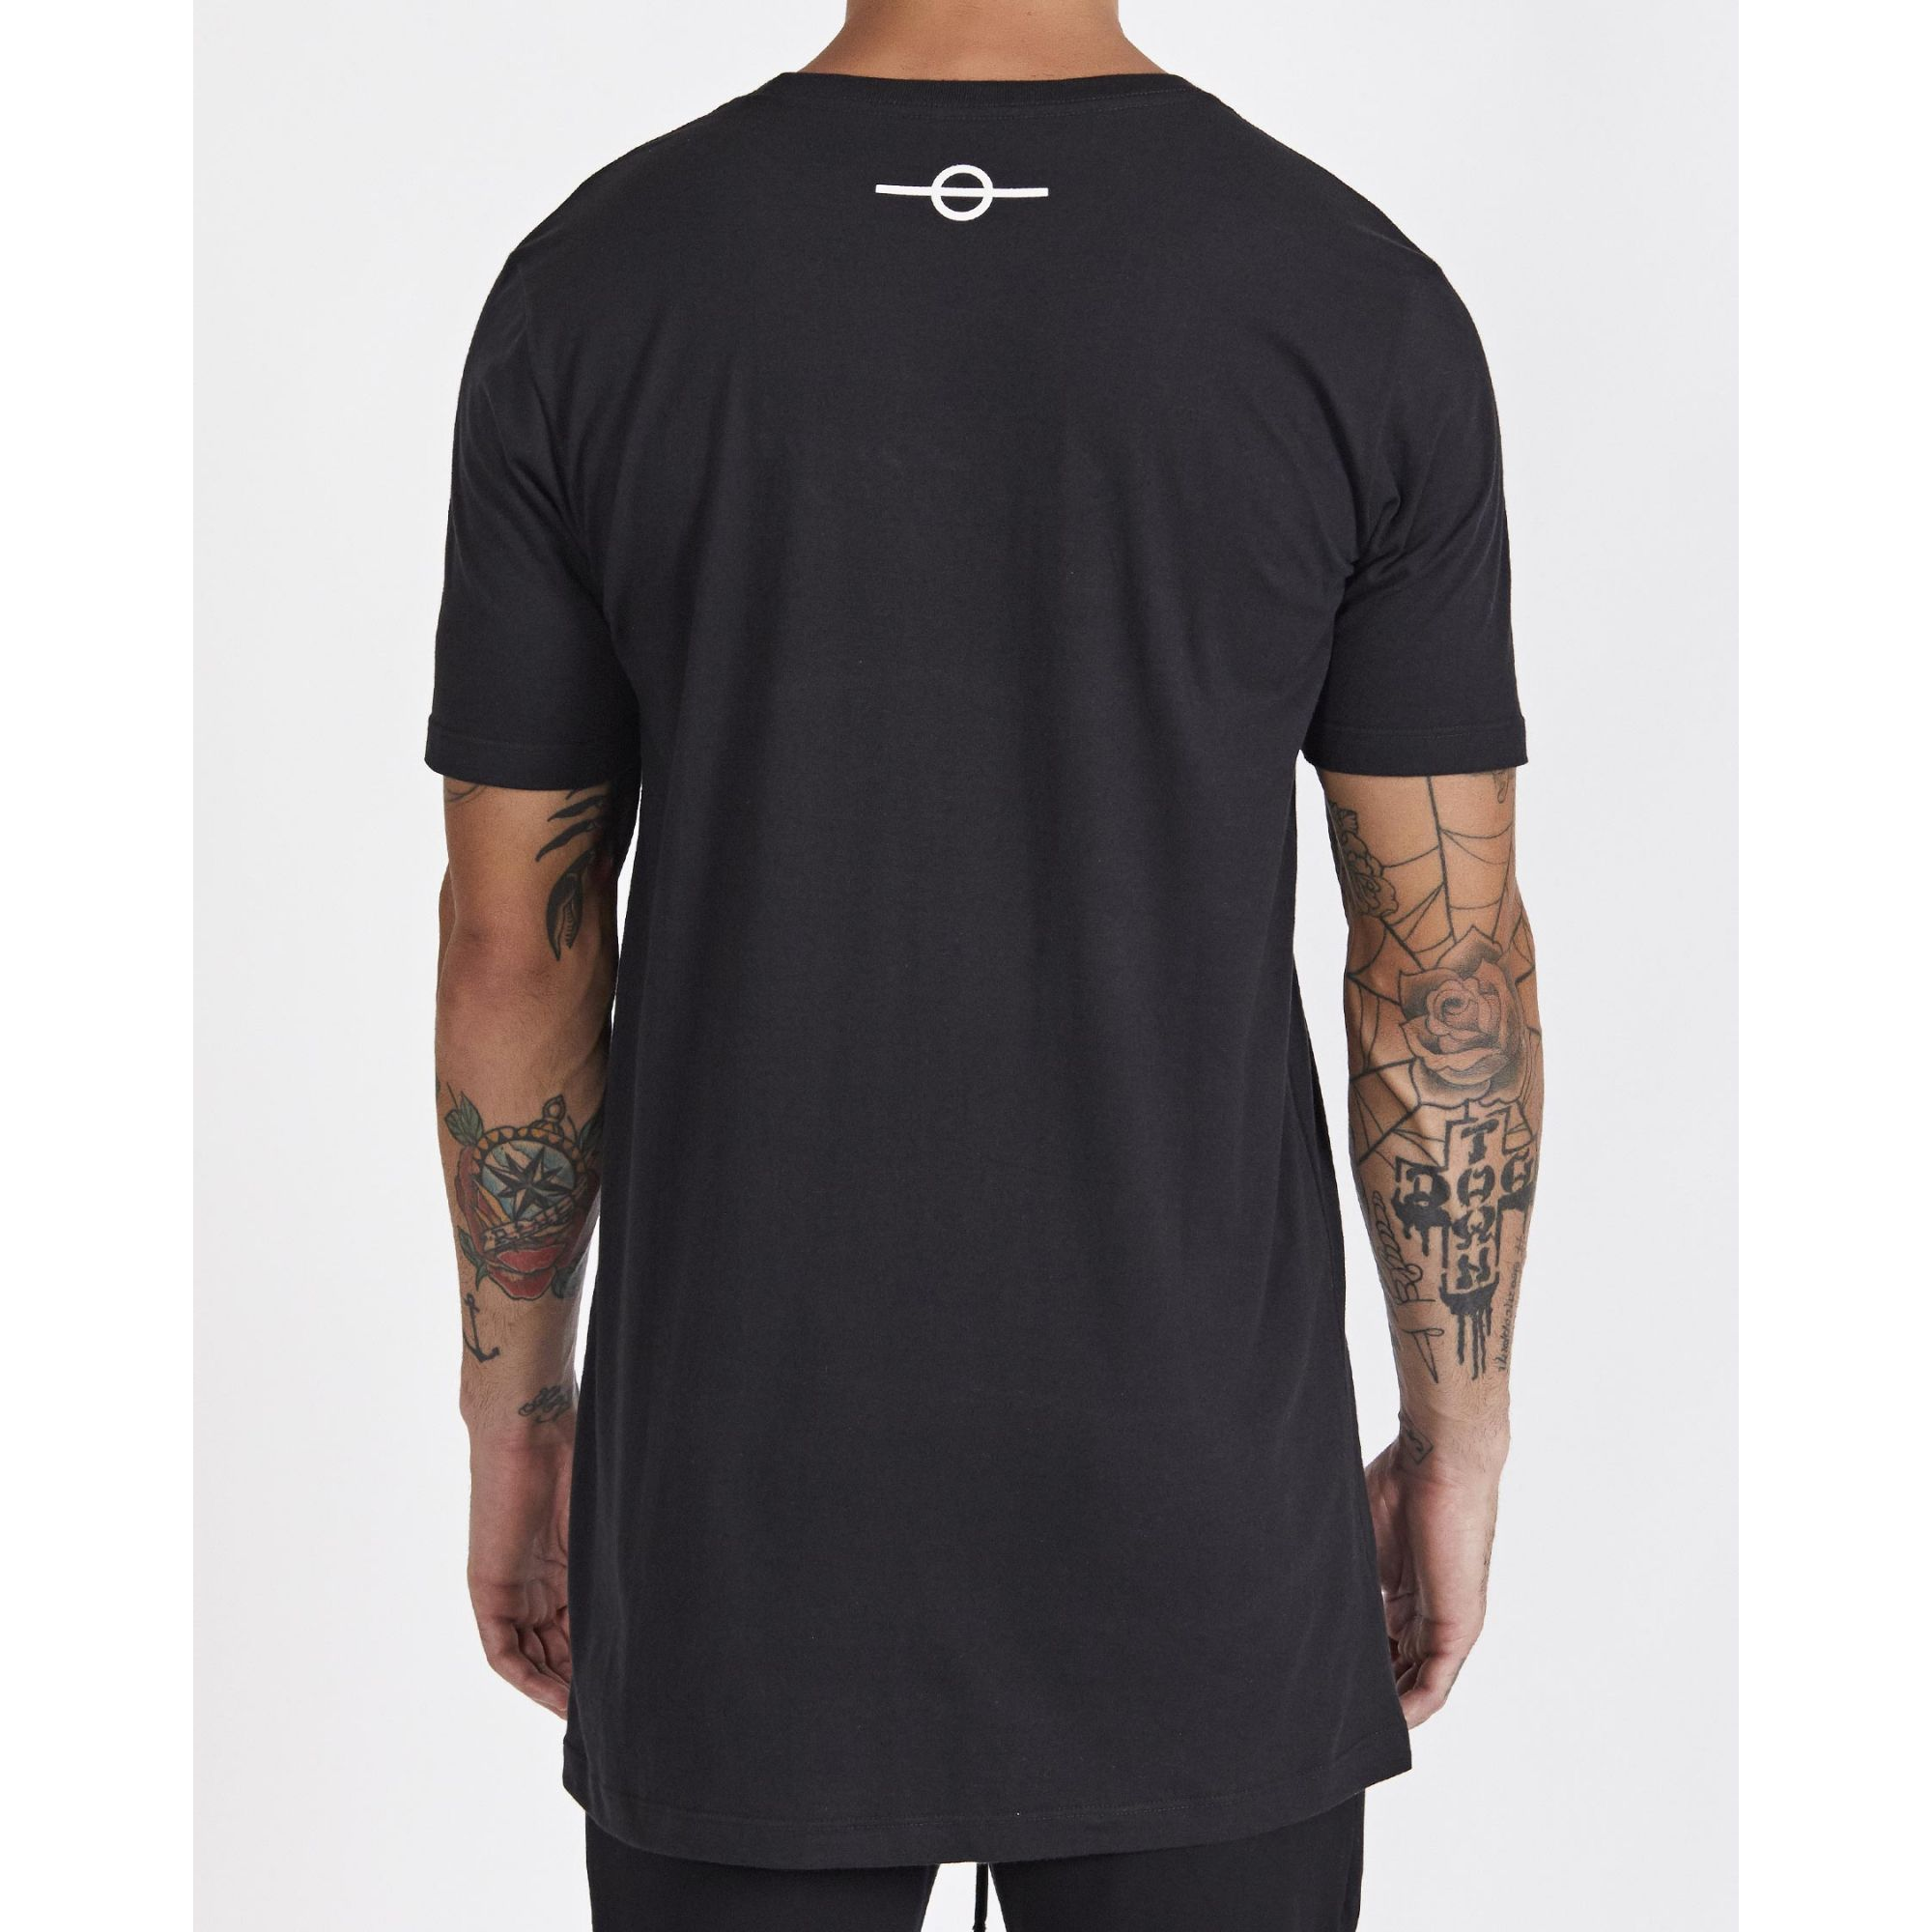 Camiseta Buh Bordado Black